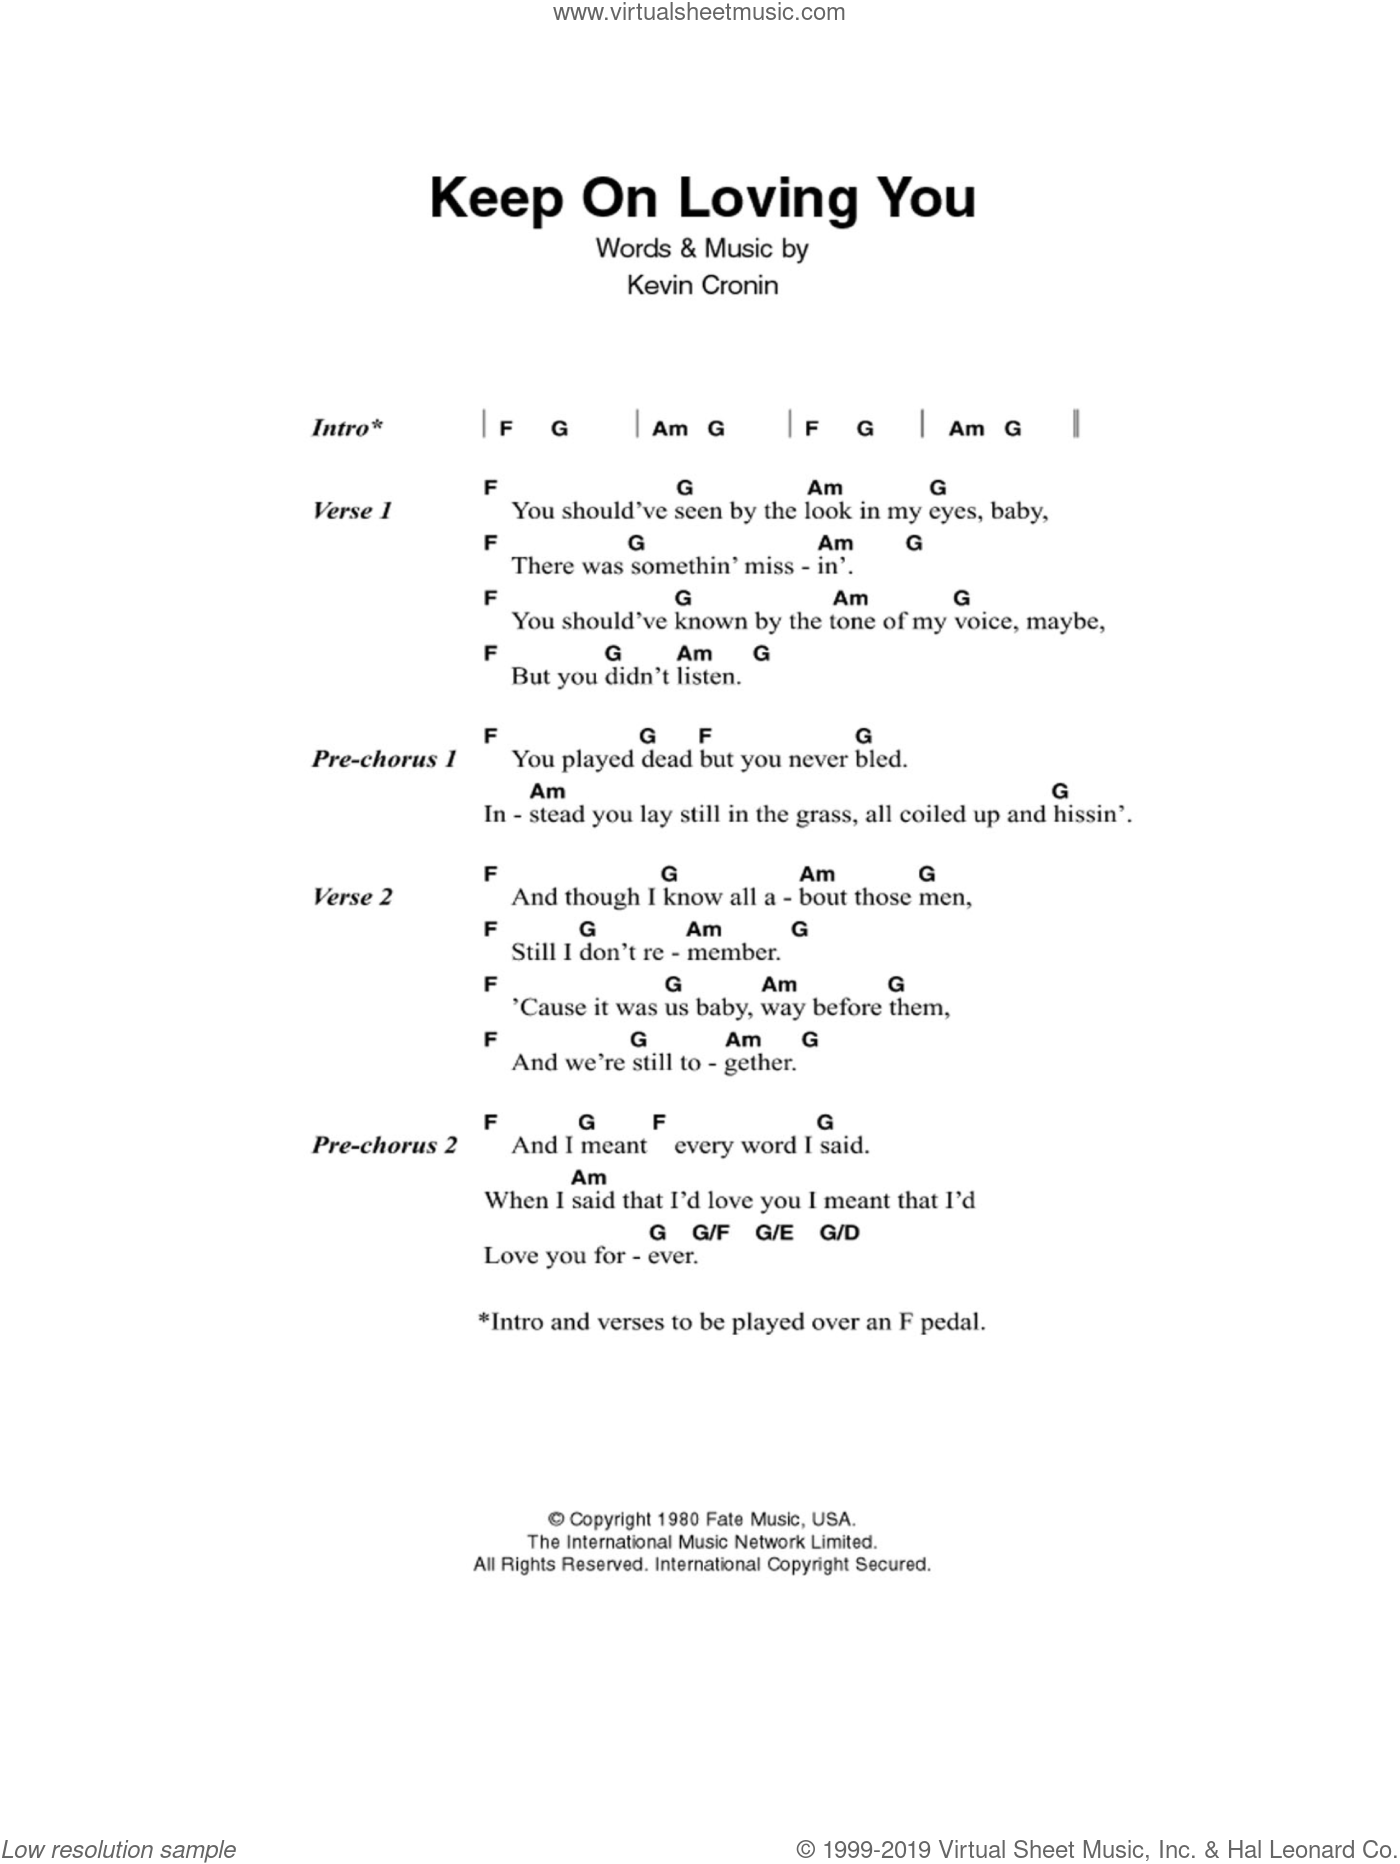 Keep On Loving You sheet music for guitar (chords, lyrics, melody) by Kevin Cronin